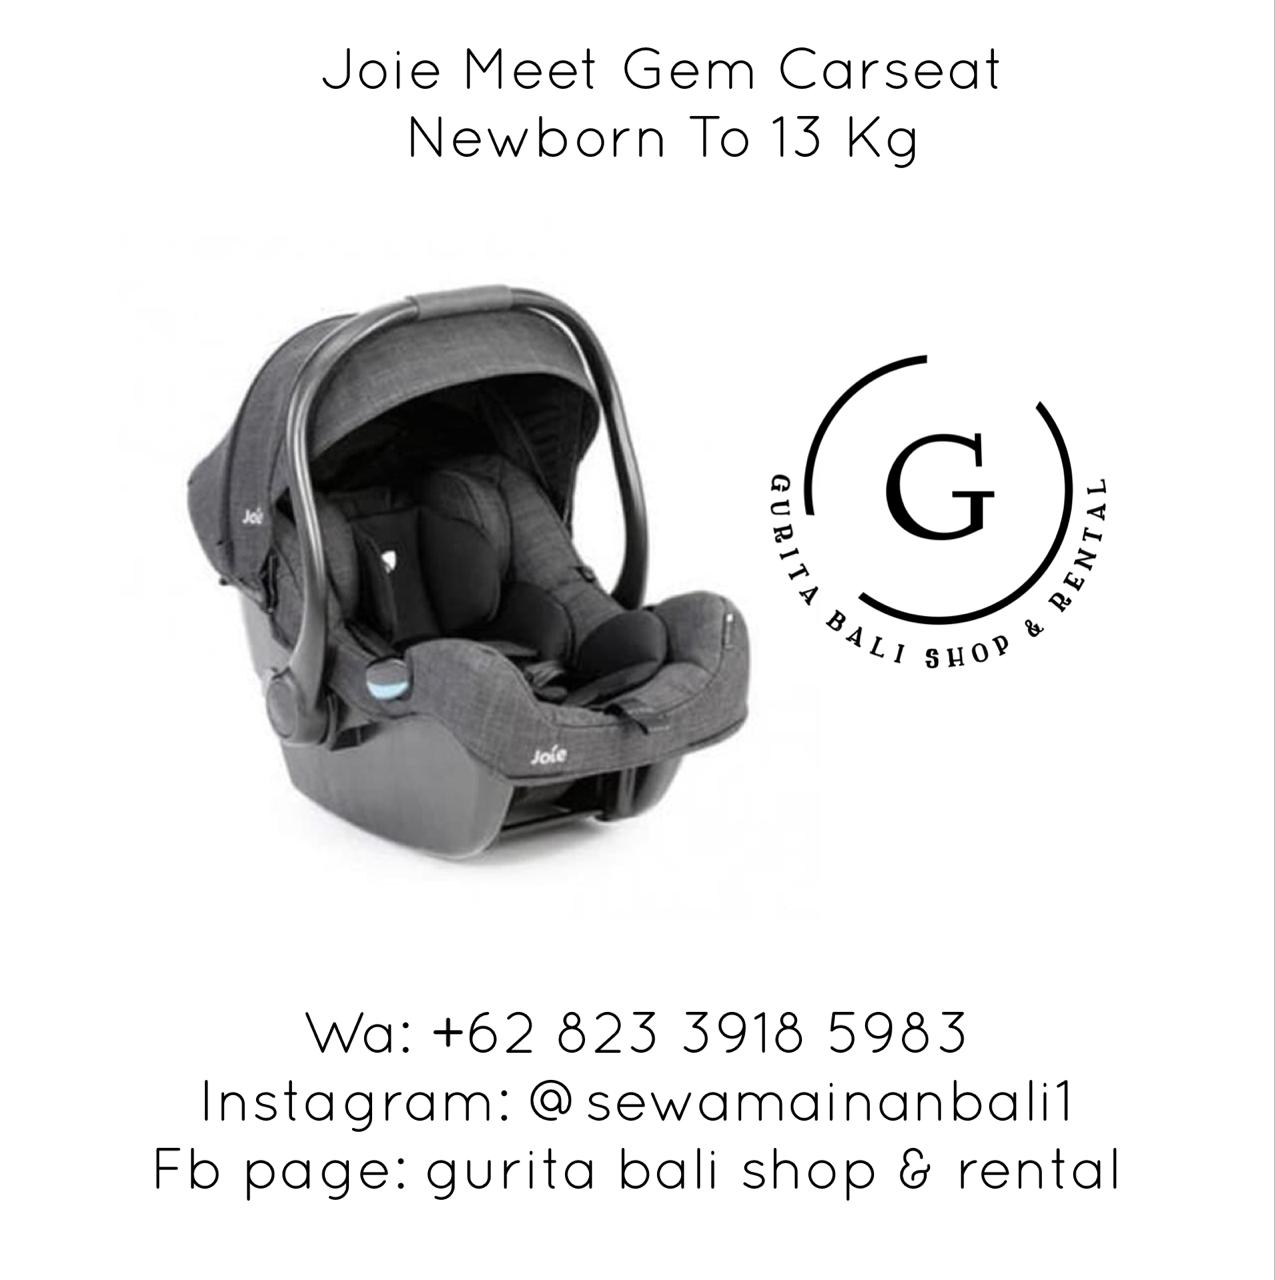 JOIE MEET GEM CARSEAT